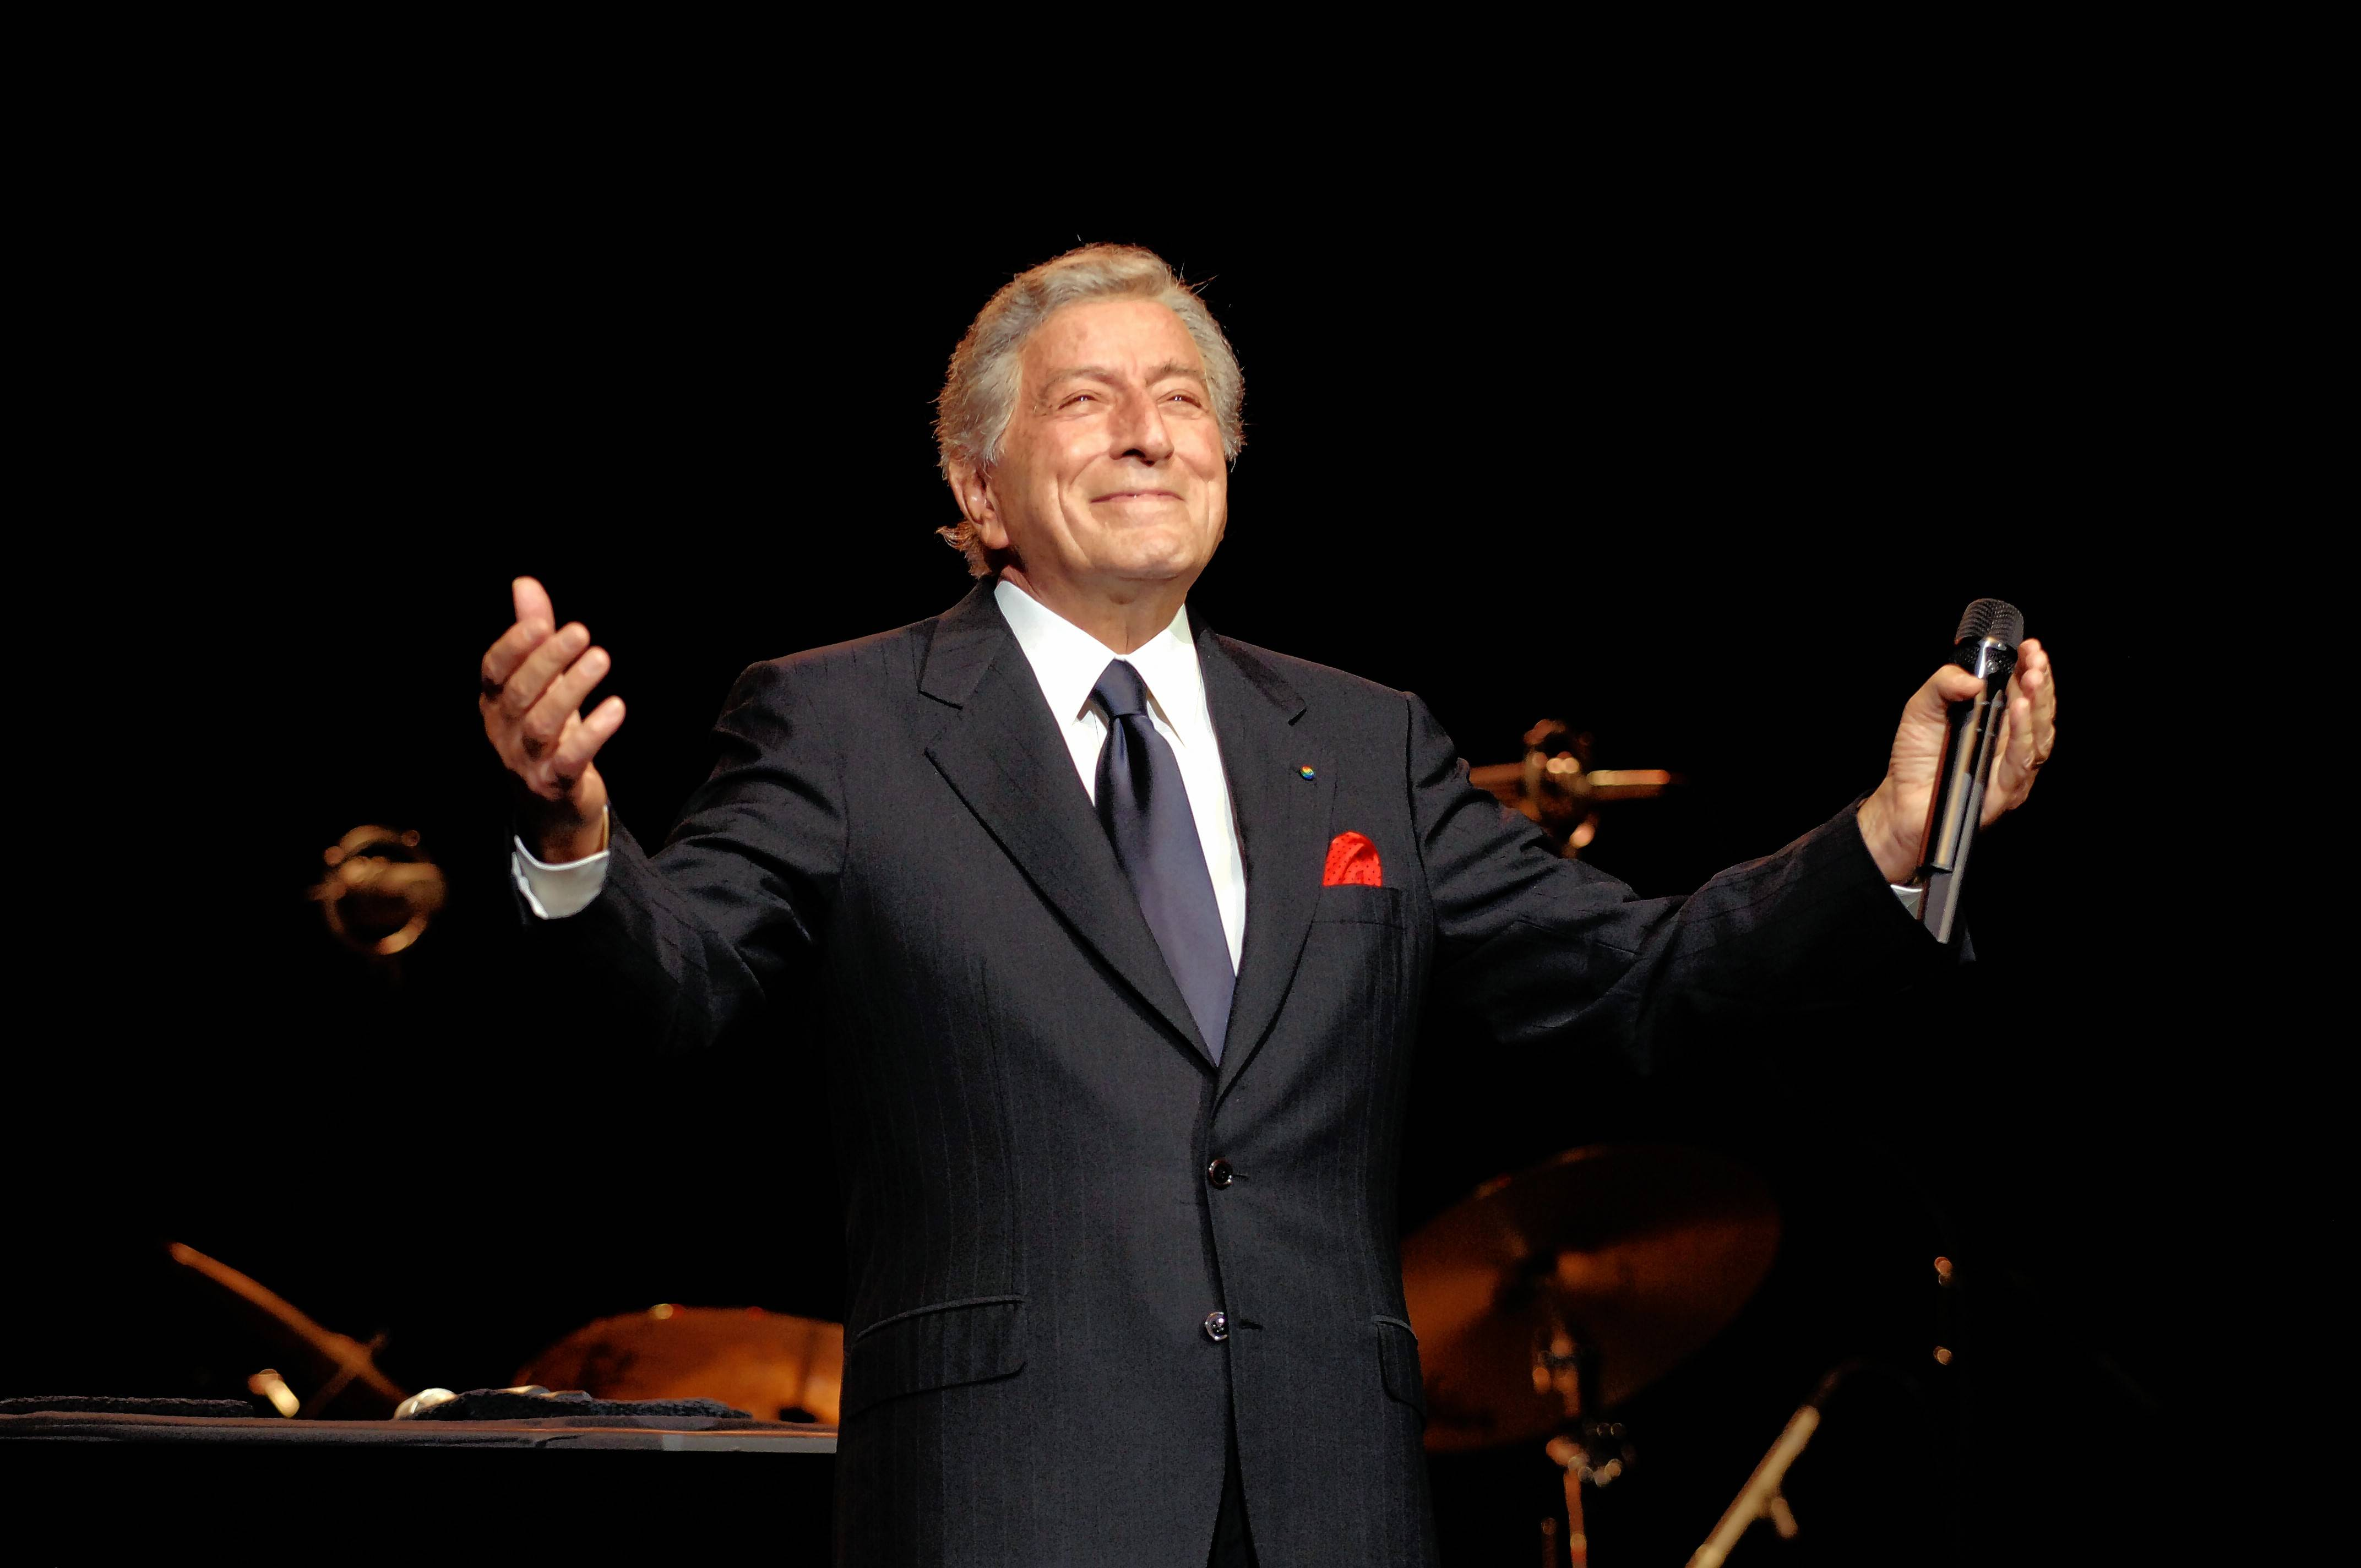 Tony Bennett returns to enchant Ravinia Festival audiences this summer. Ravinia announced the 2018 season lineup this week.